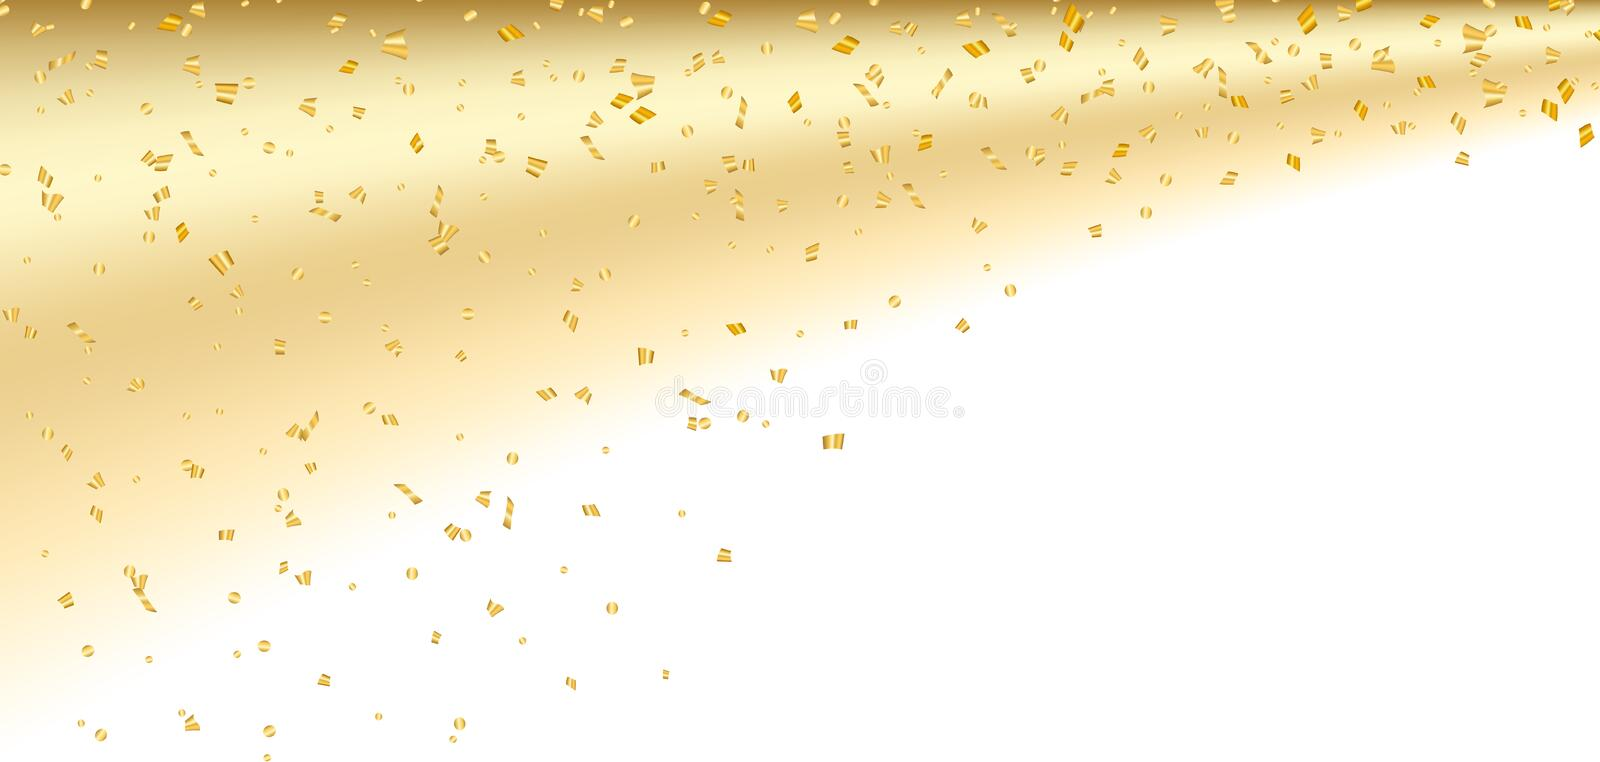 Fond blanc de confettis d'or illustration stock